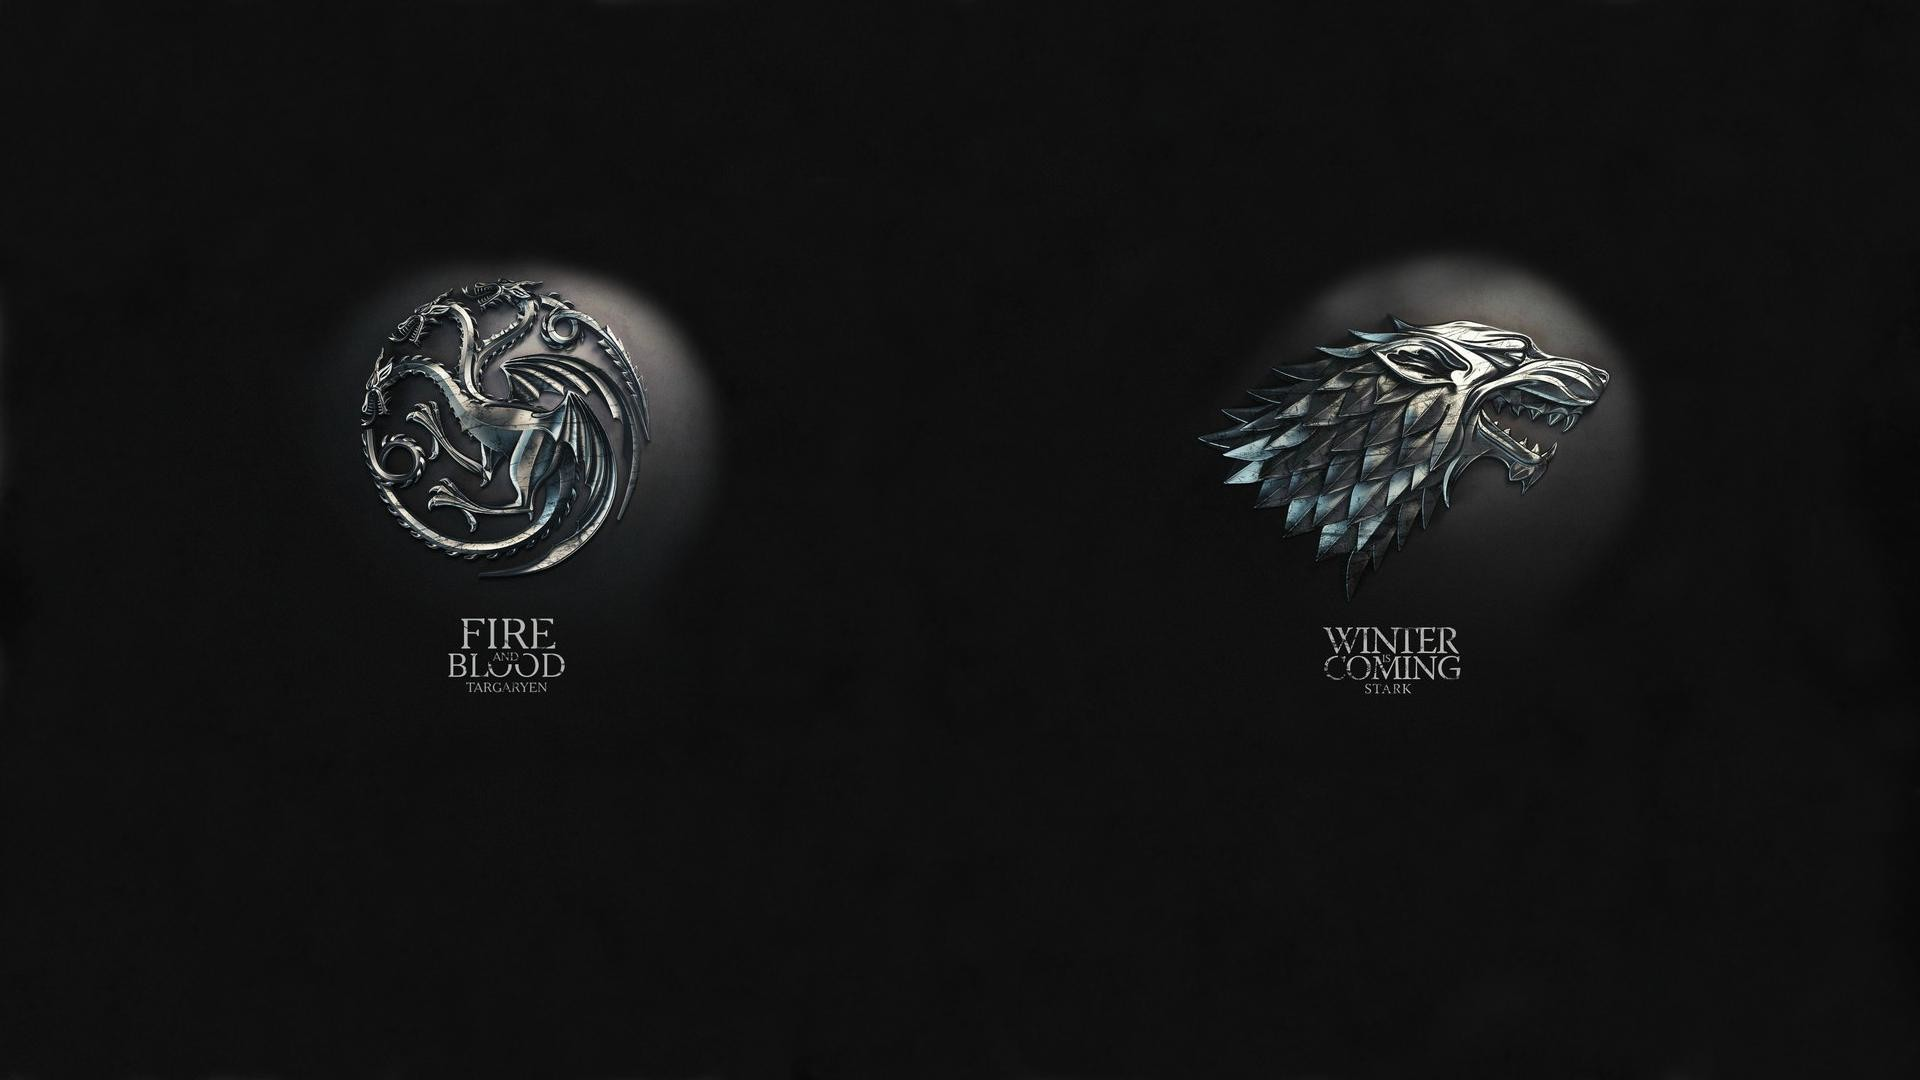 1920x1080 To anyone like me who loves both House Stark and House Targaryen .